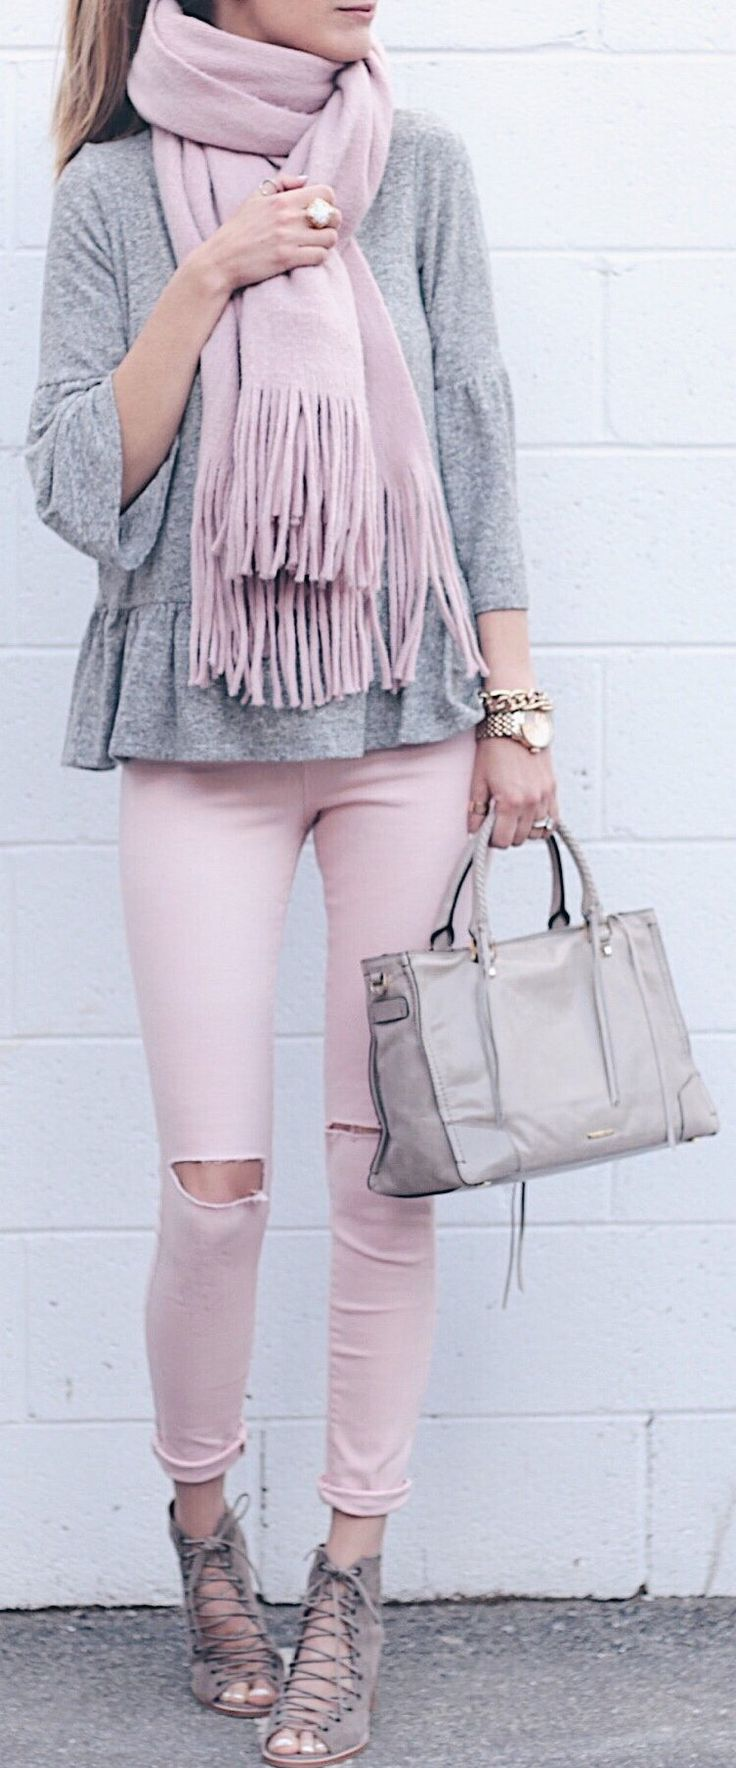 #Farbbberatung #Stilberatung #Farbenreich mit www.farben-reich.com Pink Fringe Scarf / Grey Top / Pink Destroyed Skinny Jeans / Grey Laced Up Booties http://bellanblue.com